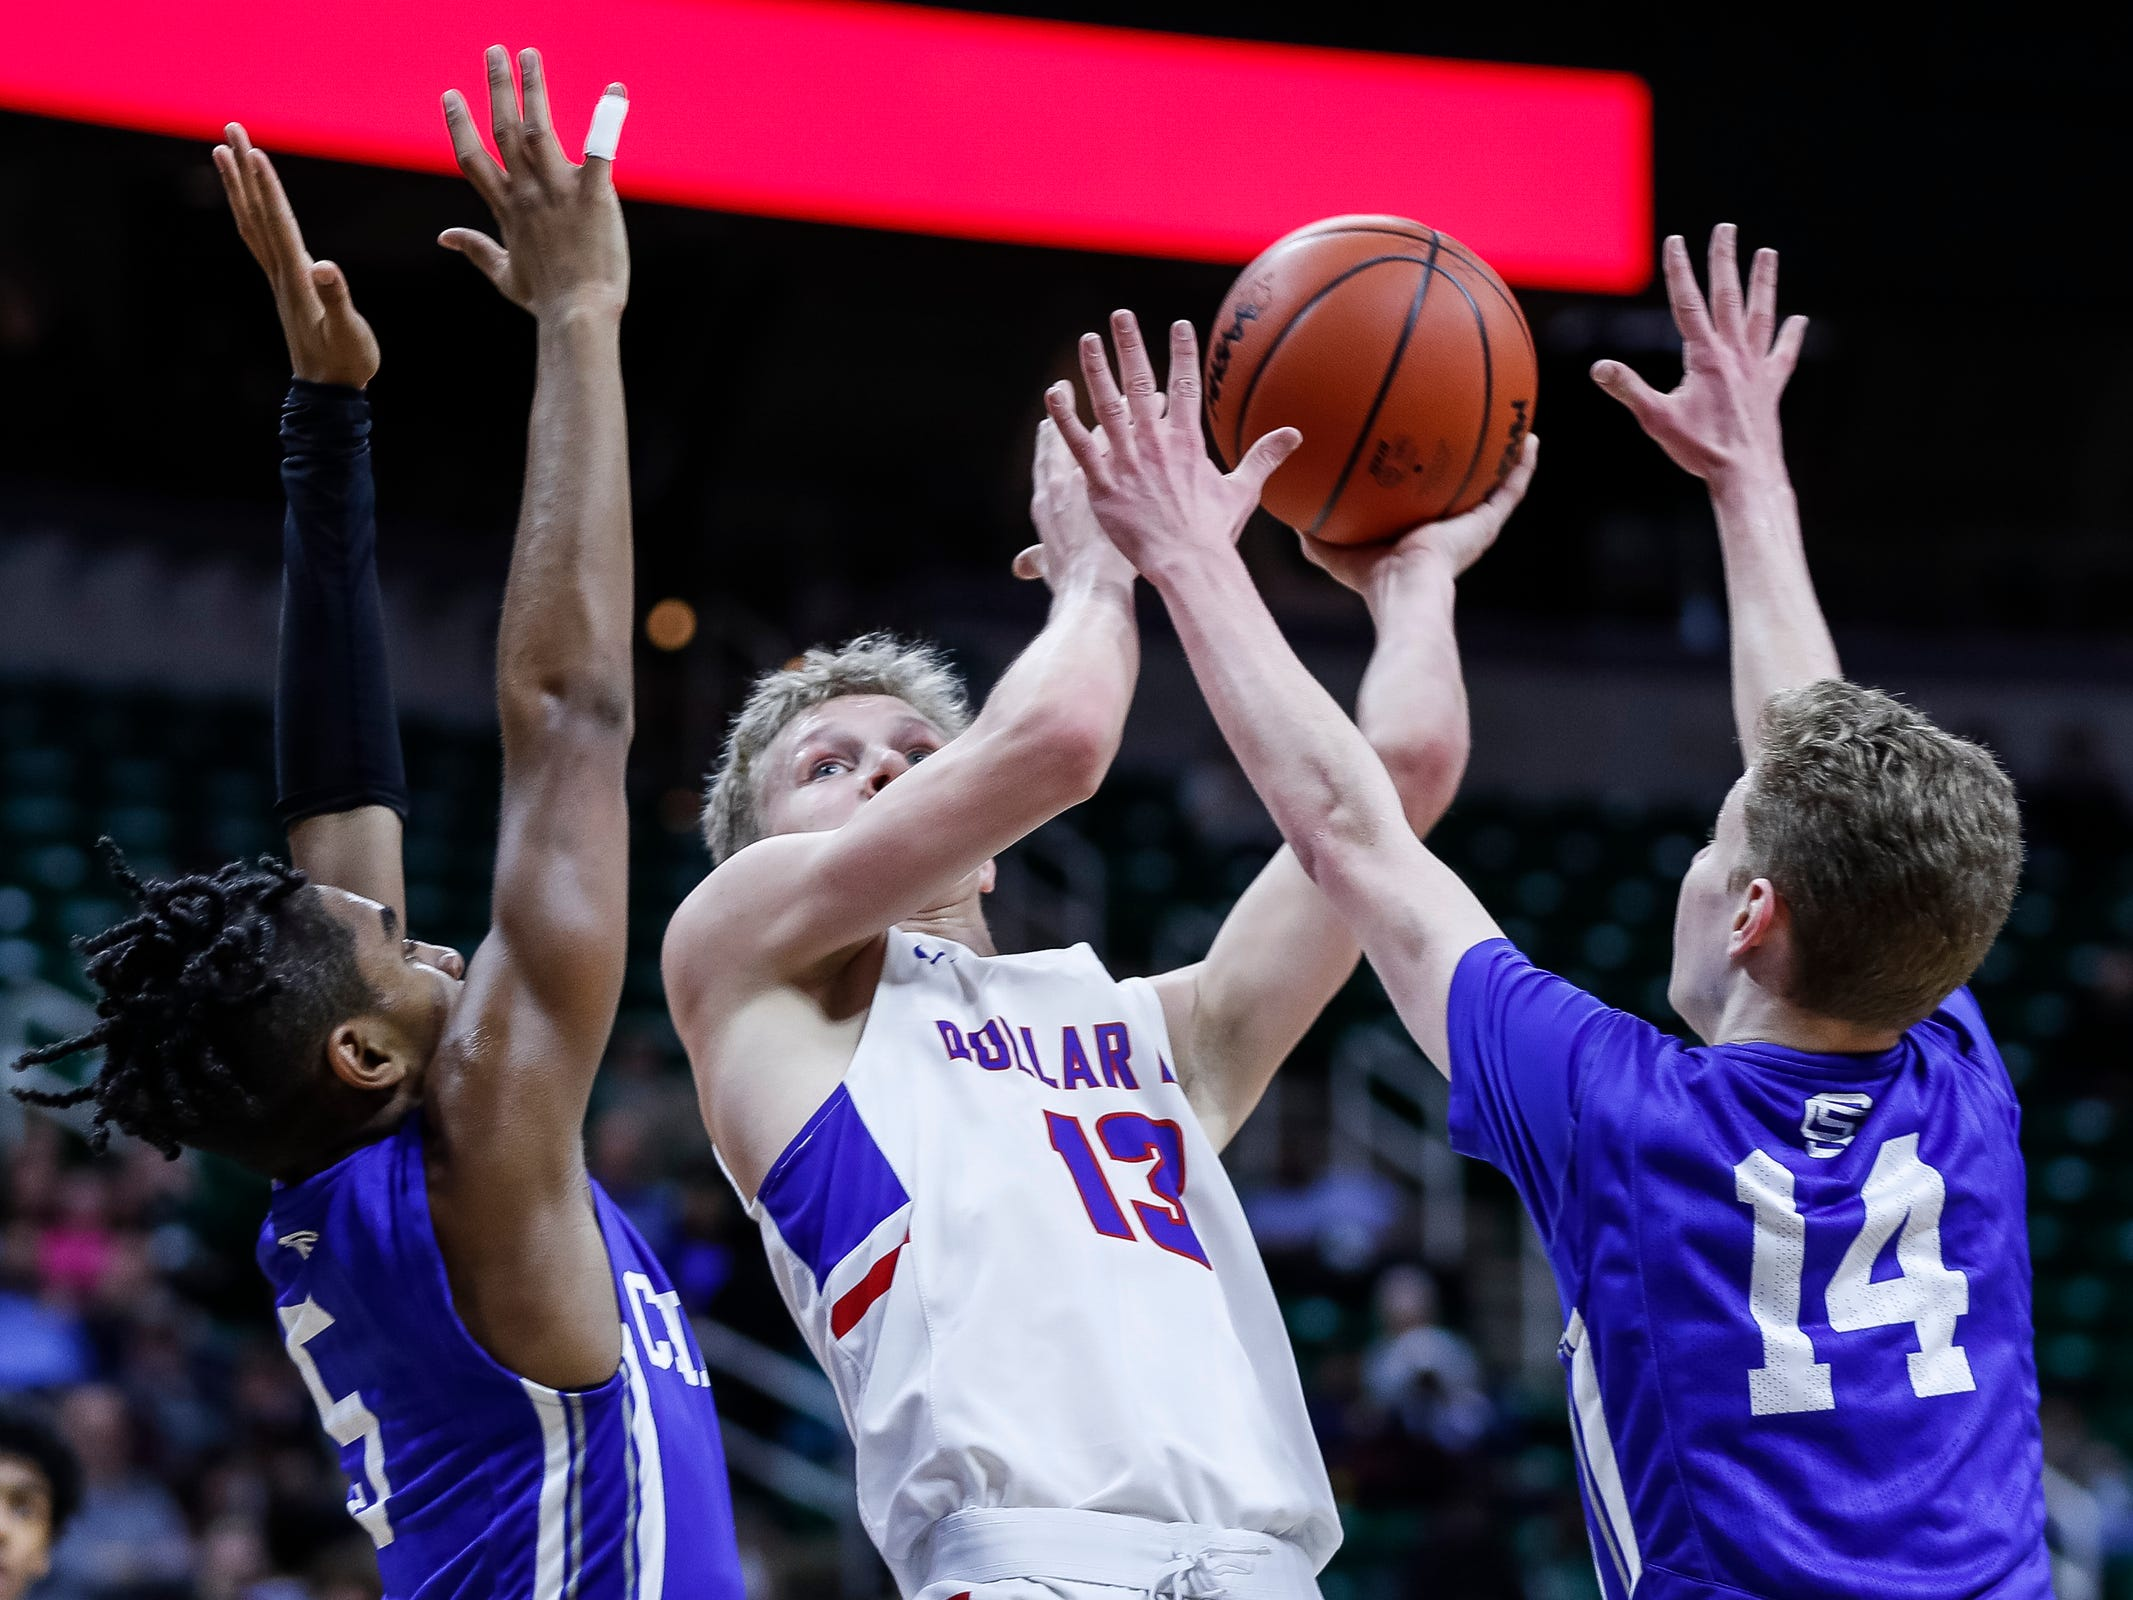 Dollar Bay's Connor LeClaire (13) makes a layup against Southfield Christian Verian Patrick (5) and Noah Rheker (14) during the second half of MHSAA Division 4 semifinal at the Breslin Center in East Lansing, Thursday, March 14, 2019.